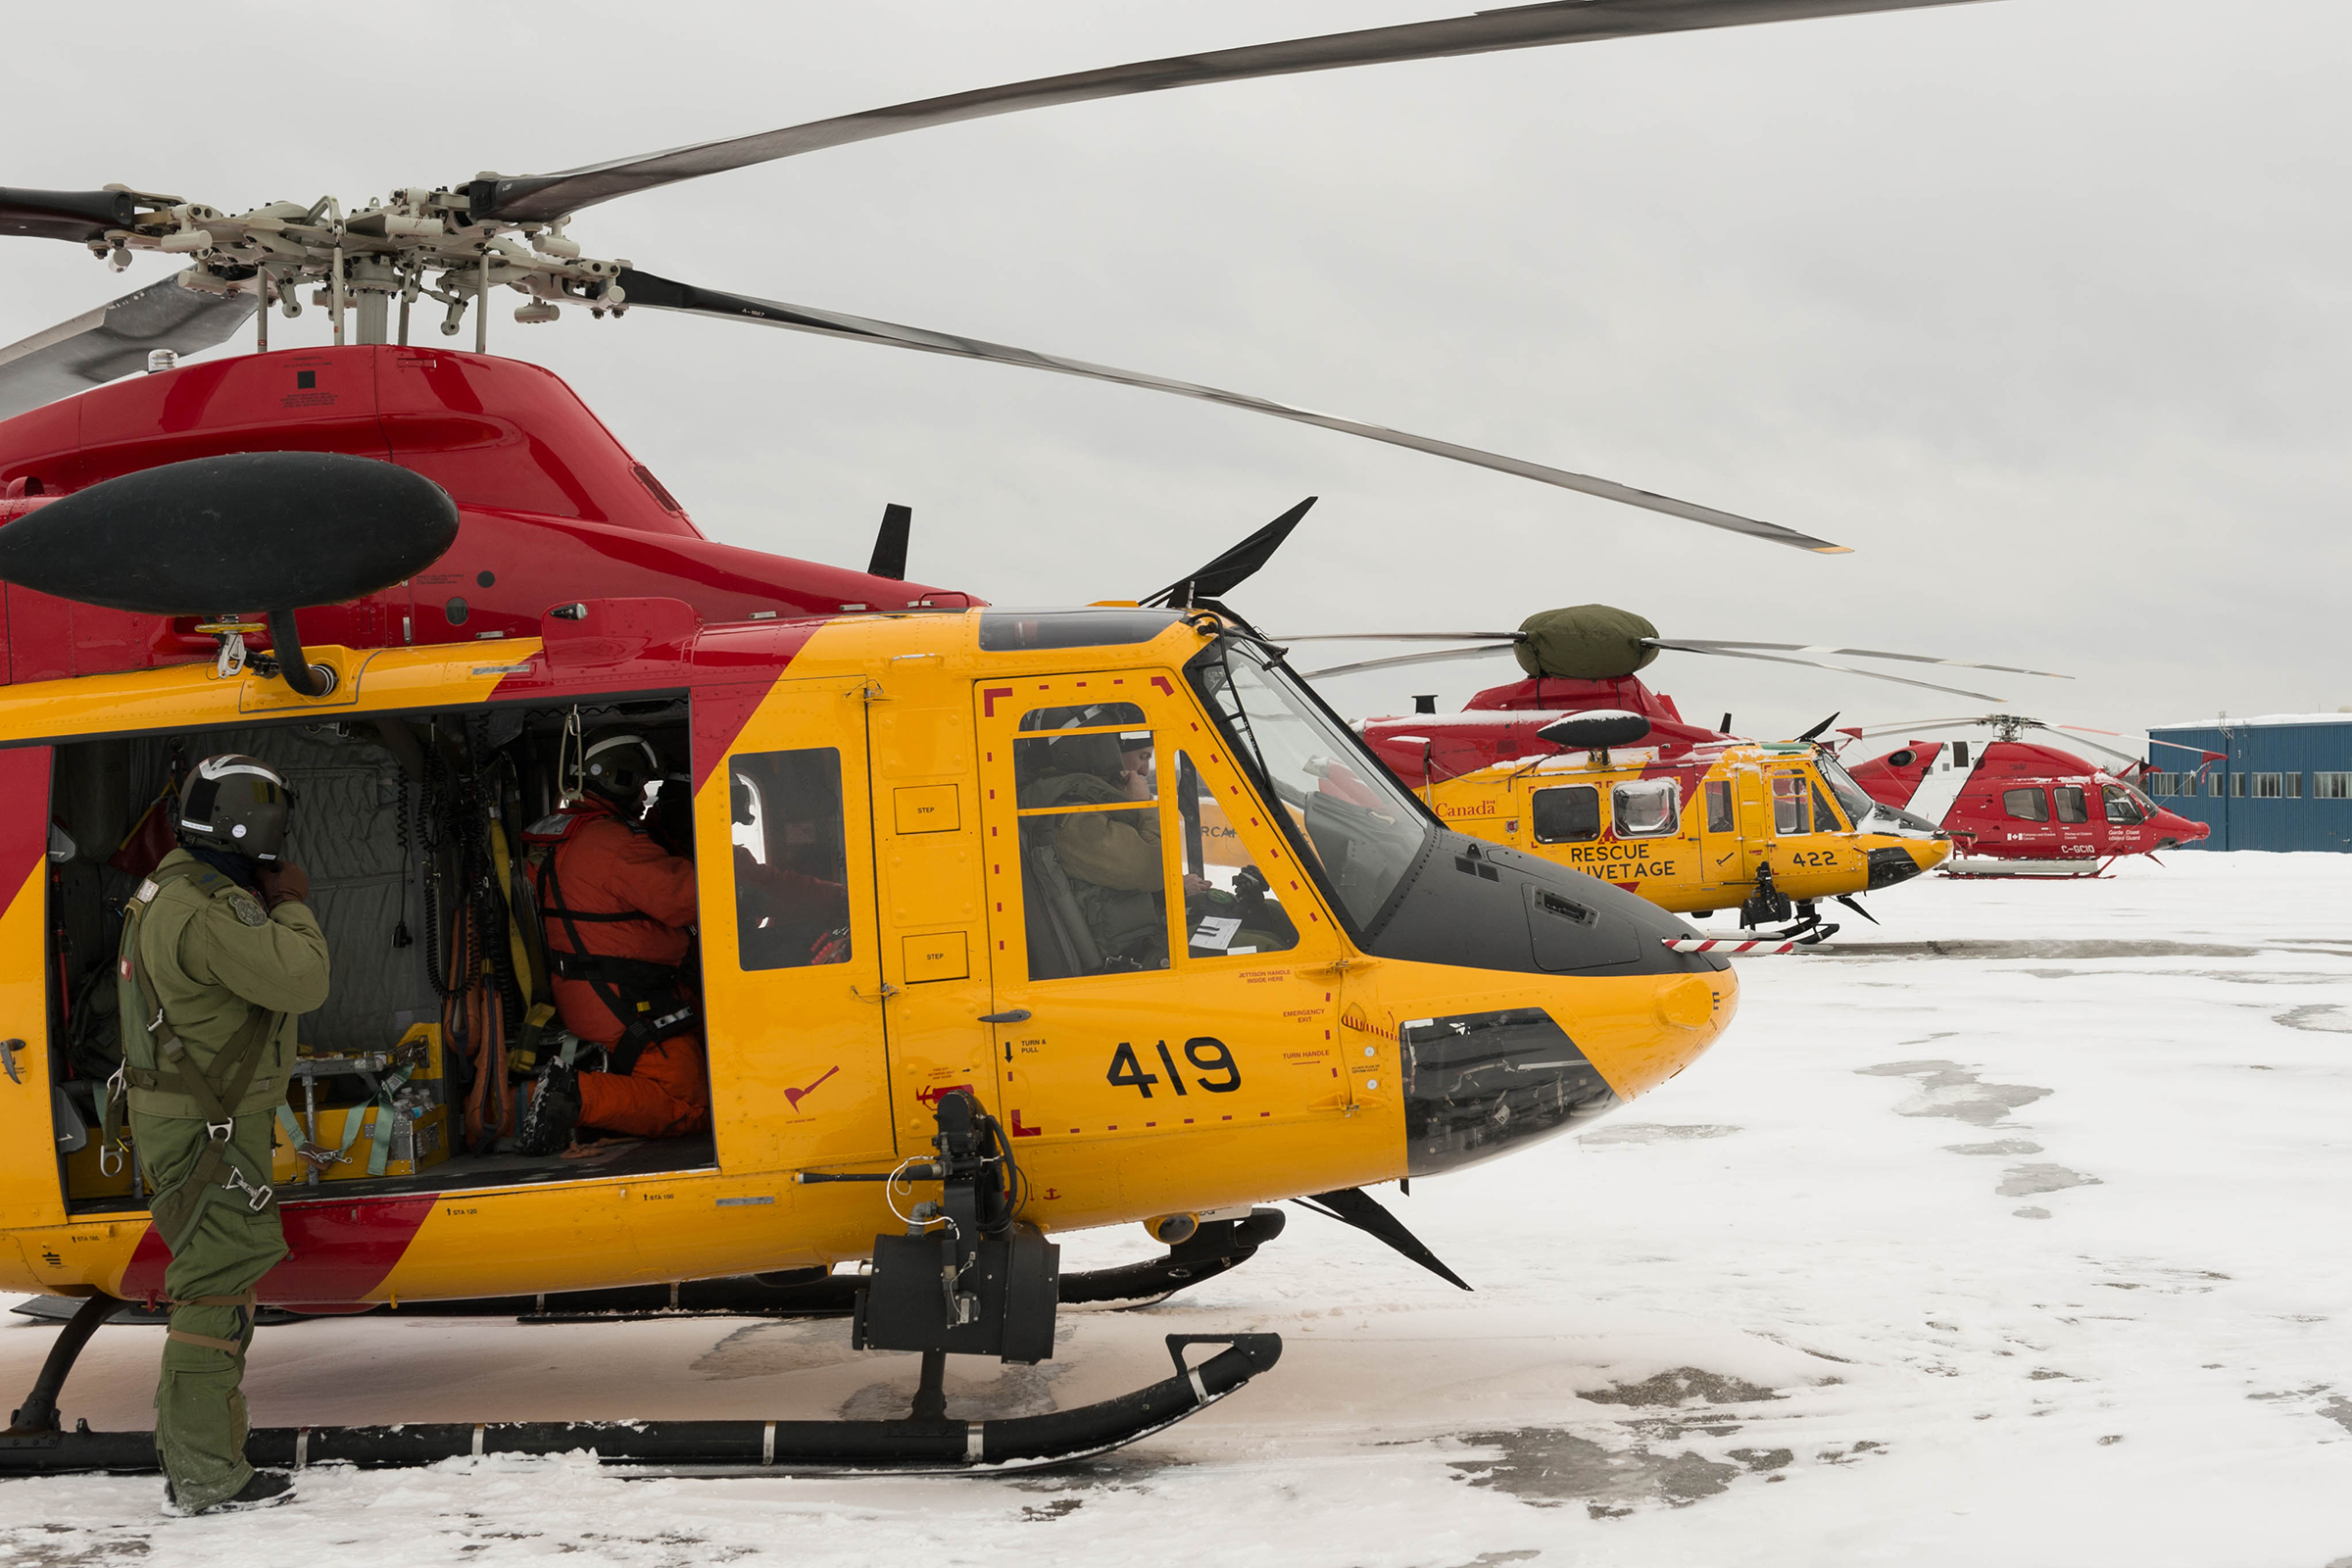 RCAF CH-146 Griffon helicopters and a Canadian Coast Guard helicopter rest on the tarmac as their crews prepare to resume the search for a missing civilian helicopter in the Timmins, Ontario, region on March 10, 2019. PHOTO: Corporal Zebulon Salmaniw, TN07-2019-0090-014